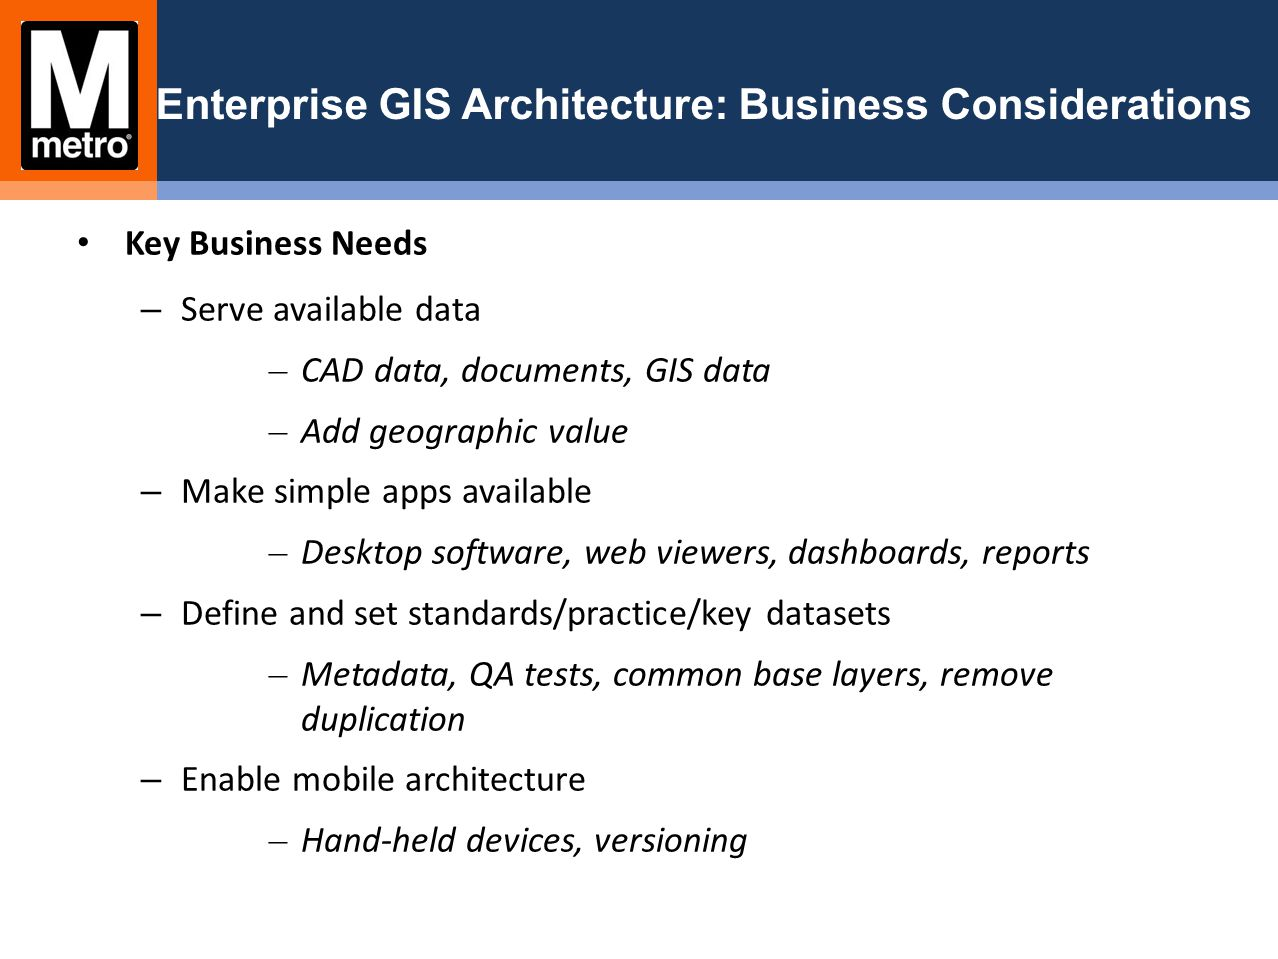 Enterprise GIS Architecture: Business Considerations Key Business Needs – Serve available data – CAD data, documents, GIS data – Add geographic value